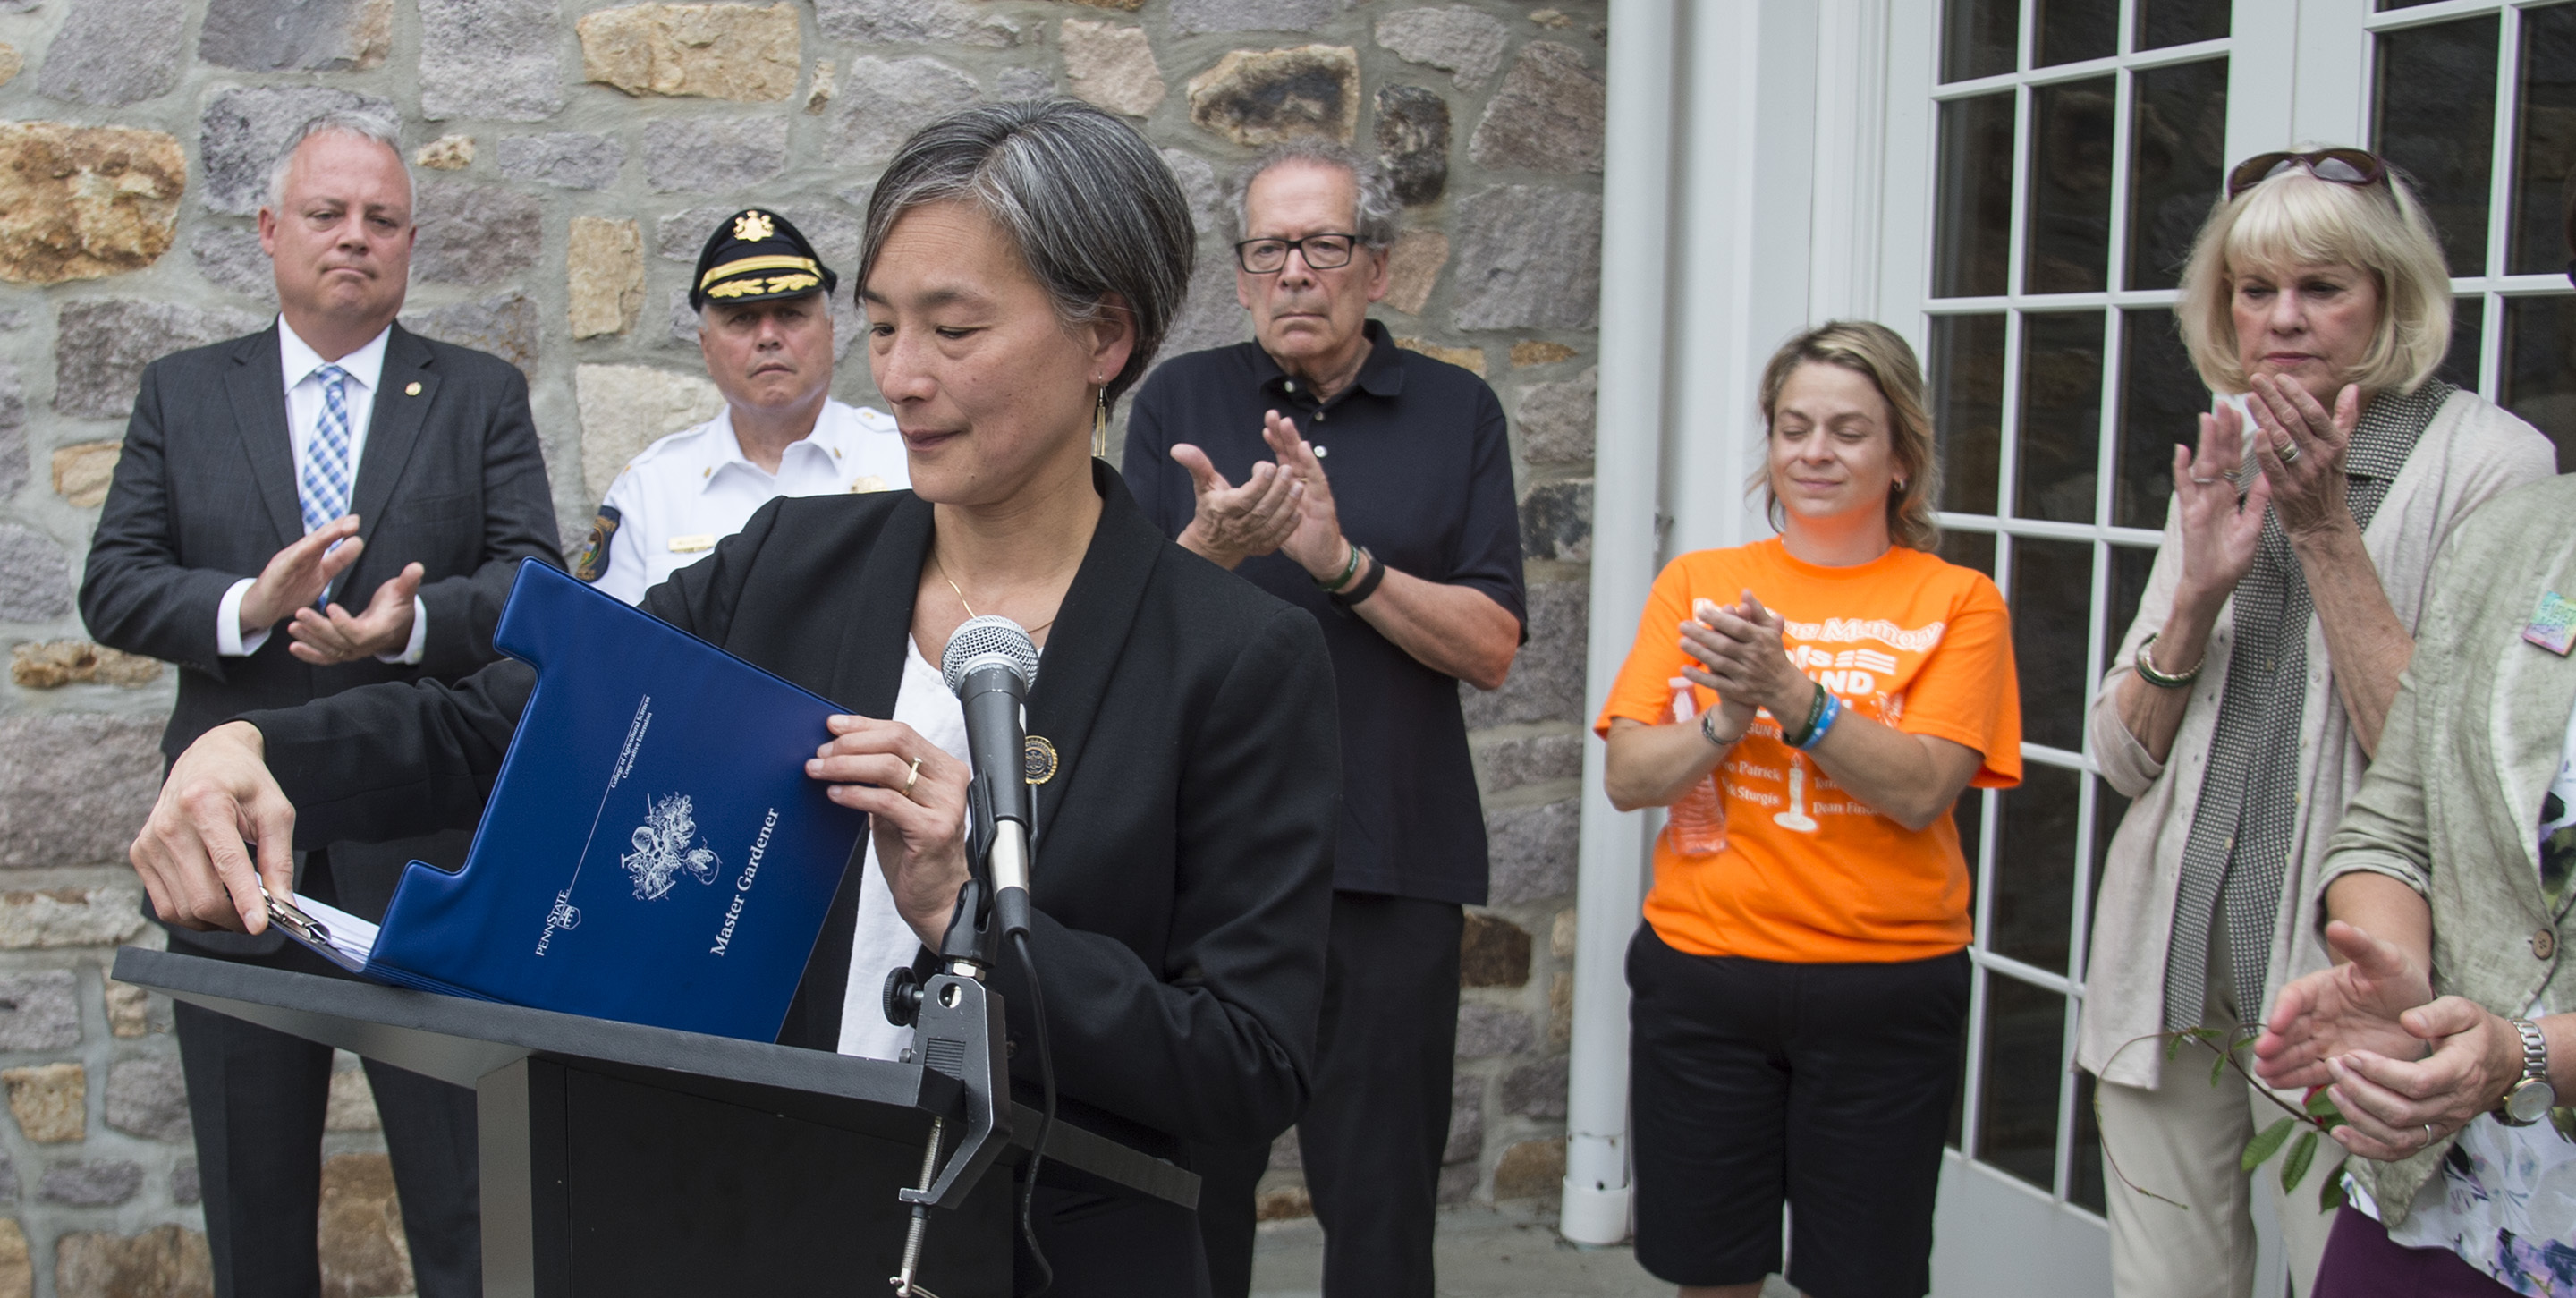 PA State Rep. Helen Tai (D-Bucks) closes her notes and receives a round of applause after she announced at a press conference at the Solebury Township Building July 31, 2018 that she will be introducing three gun safety bills into the legislature this fall. Others at the press conference are (from left) PA State Rep. Perry Warren (D - Bucks) — who is also reintroducing a universal gun background check bill — Solebury Township police chief Dominick Bellizzie, Rich Patrick, grandfather and legal guardian of Jimi Patrick, one of Cosmo DiNardo's victims, Melissa Fratanduono-Meo, mother of another DiNardo victim Tom Meo, and Sharon Patrick, Jimi Patrick�s grandmother.